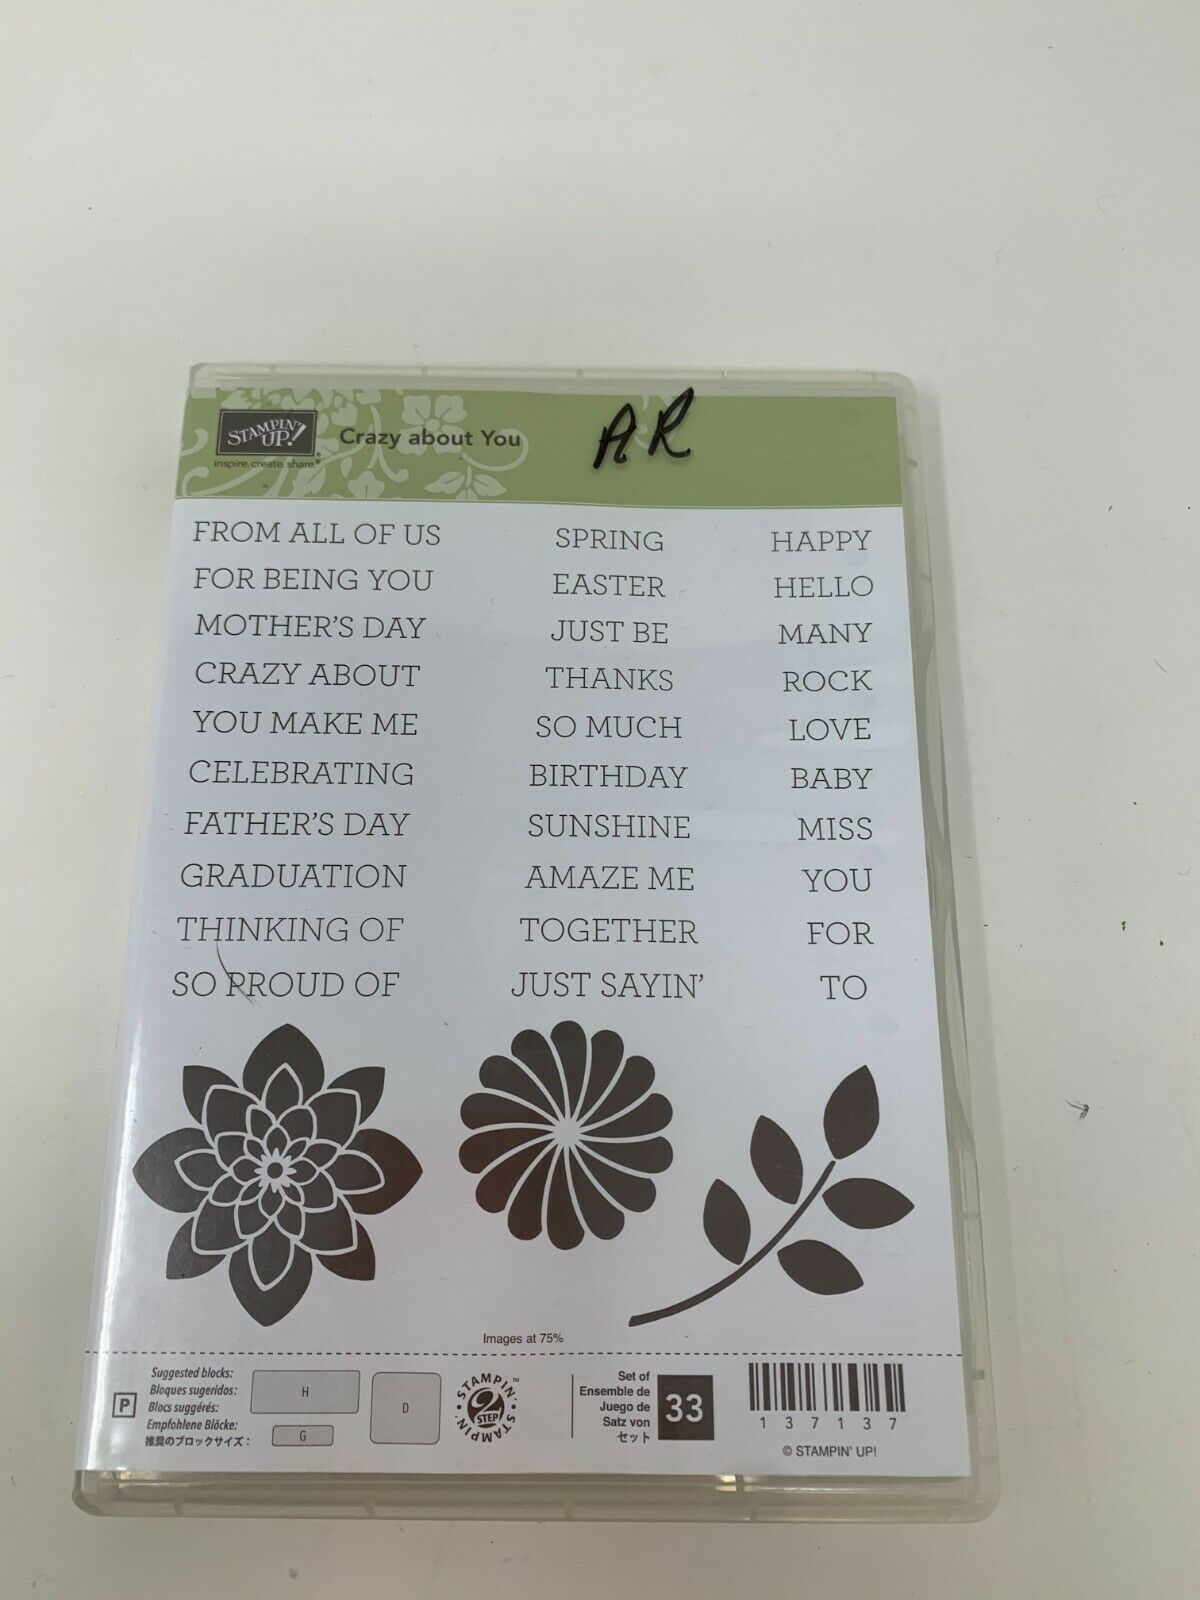 Primary image for Stampin Up Crazy About You Words Phrases Photopolymer stamp set 33 Flowers New